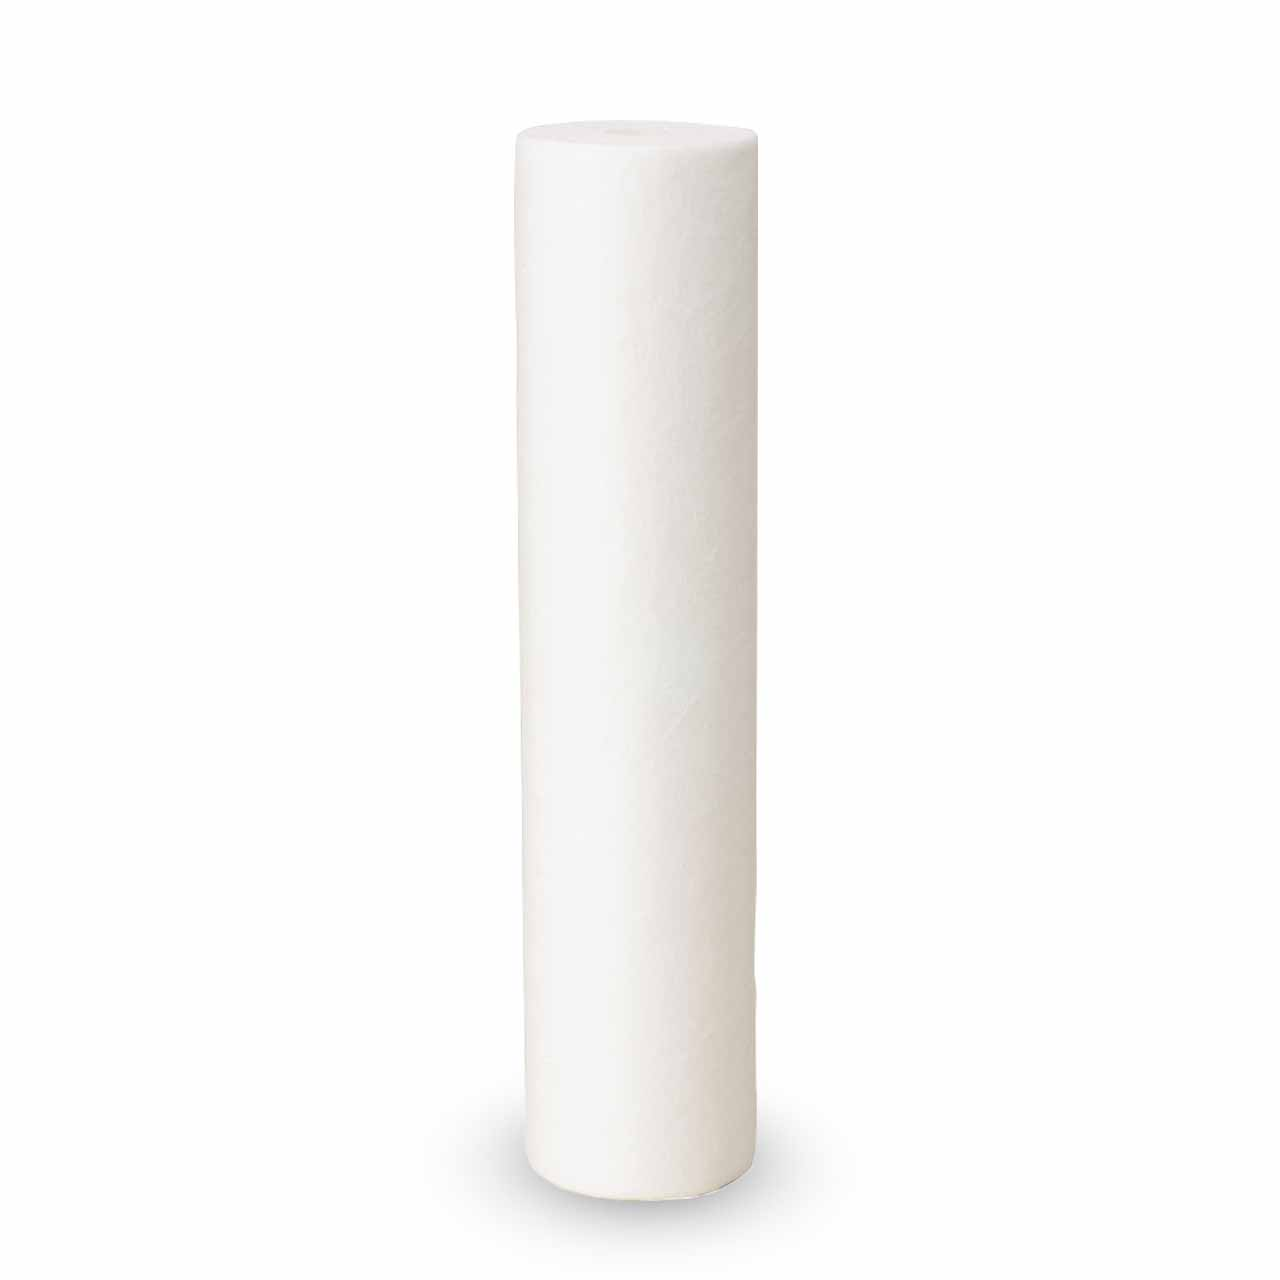 Package Of 4 20 x 4.5 Pentek DGD-7525-20 Sediment Water Filters